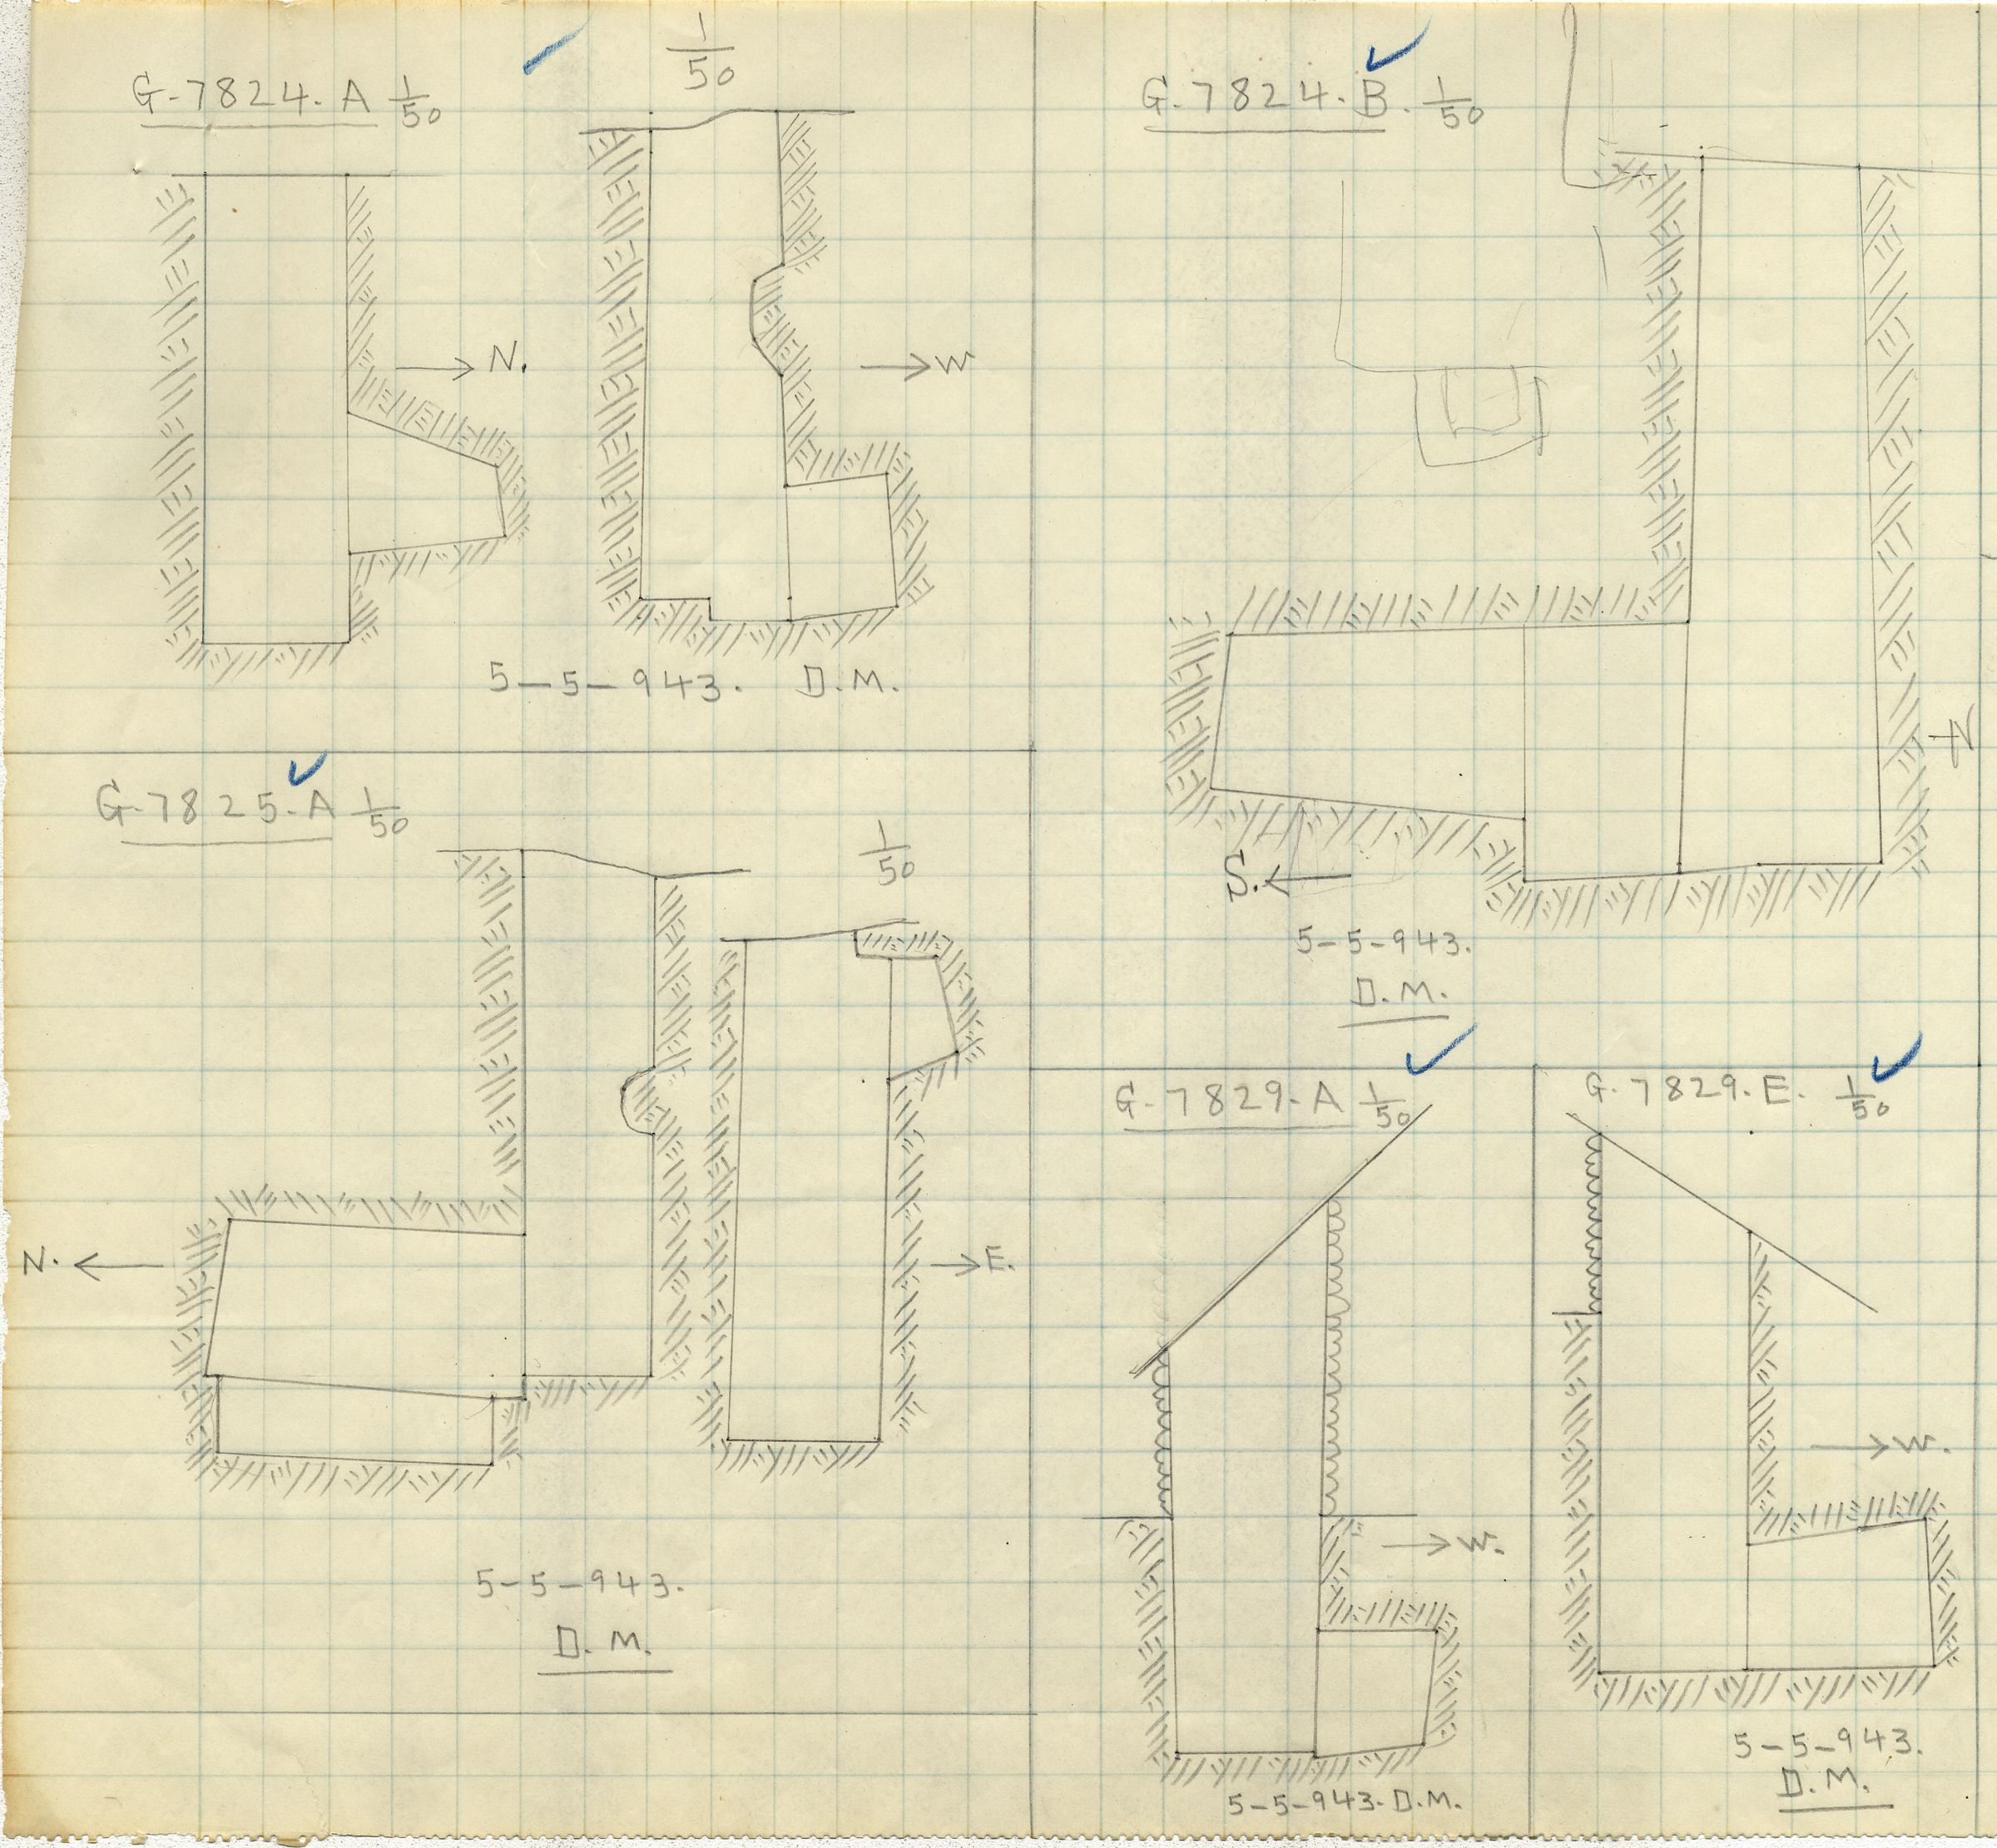 Maps and plans: G 7824, Shaft A and B & G 7825, Shaft A & G 7829, Shaft A and E